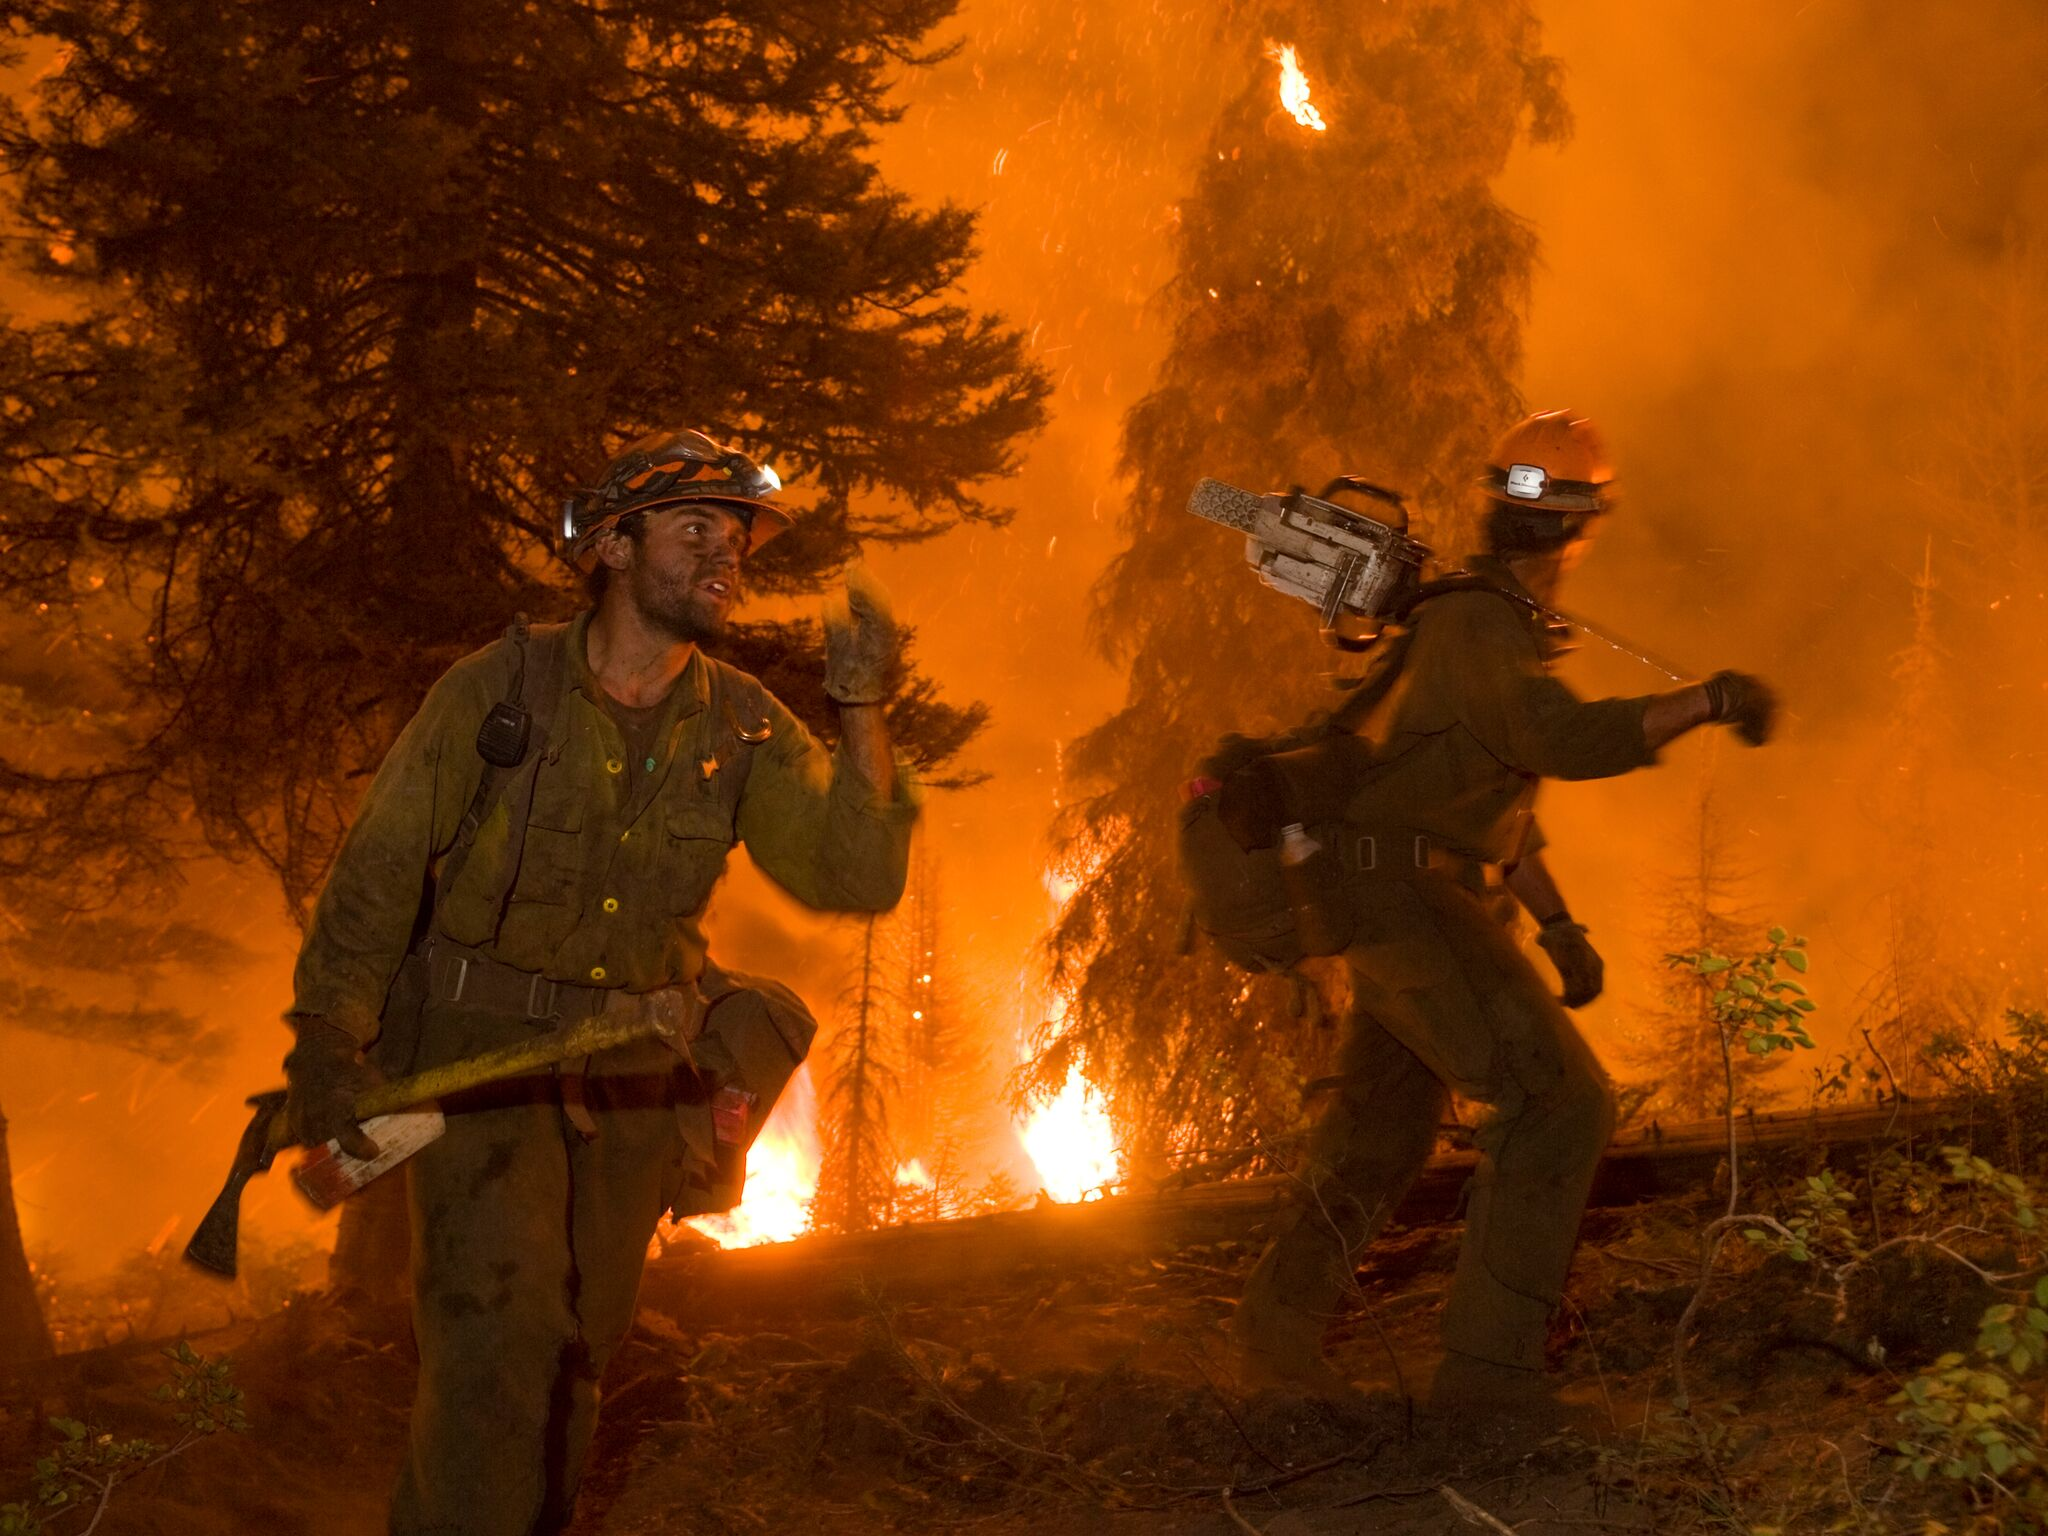 Photo of two firefighters at a wildfire.